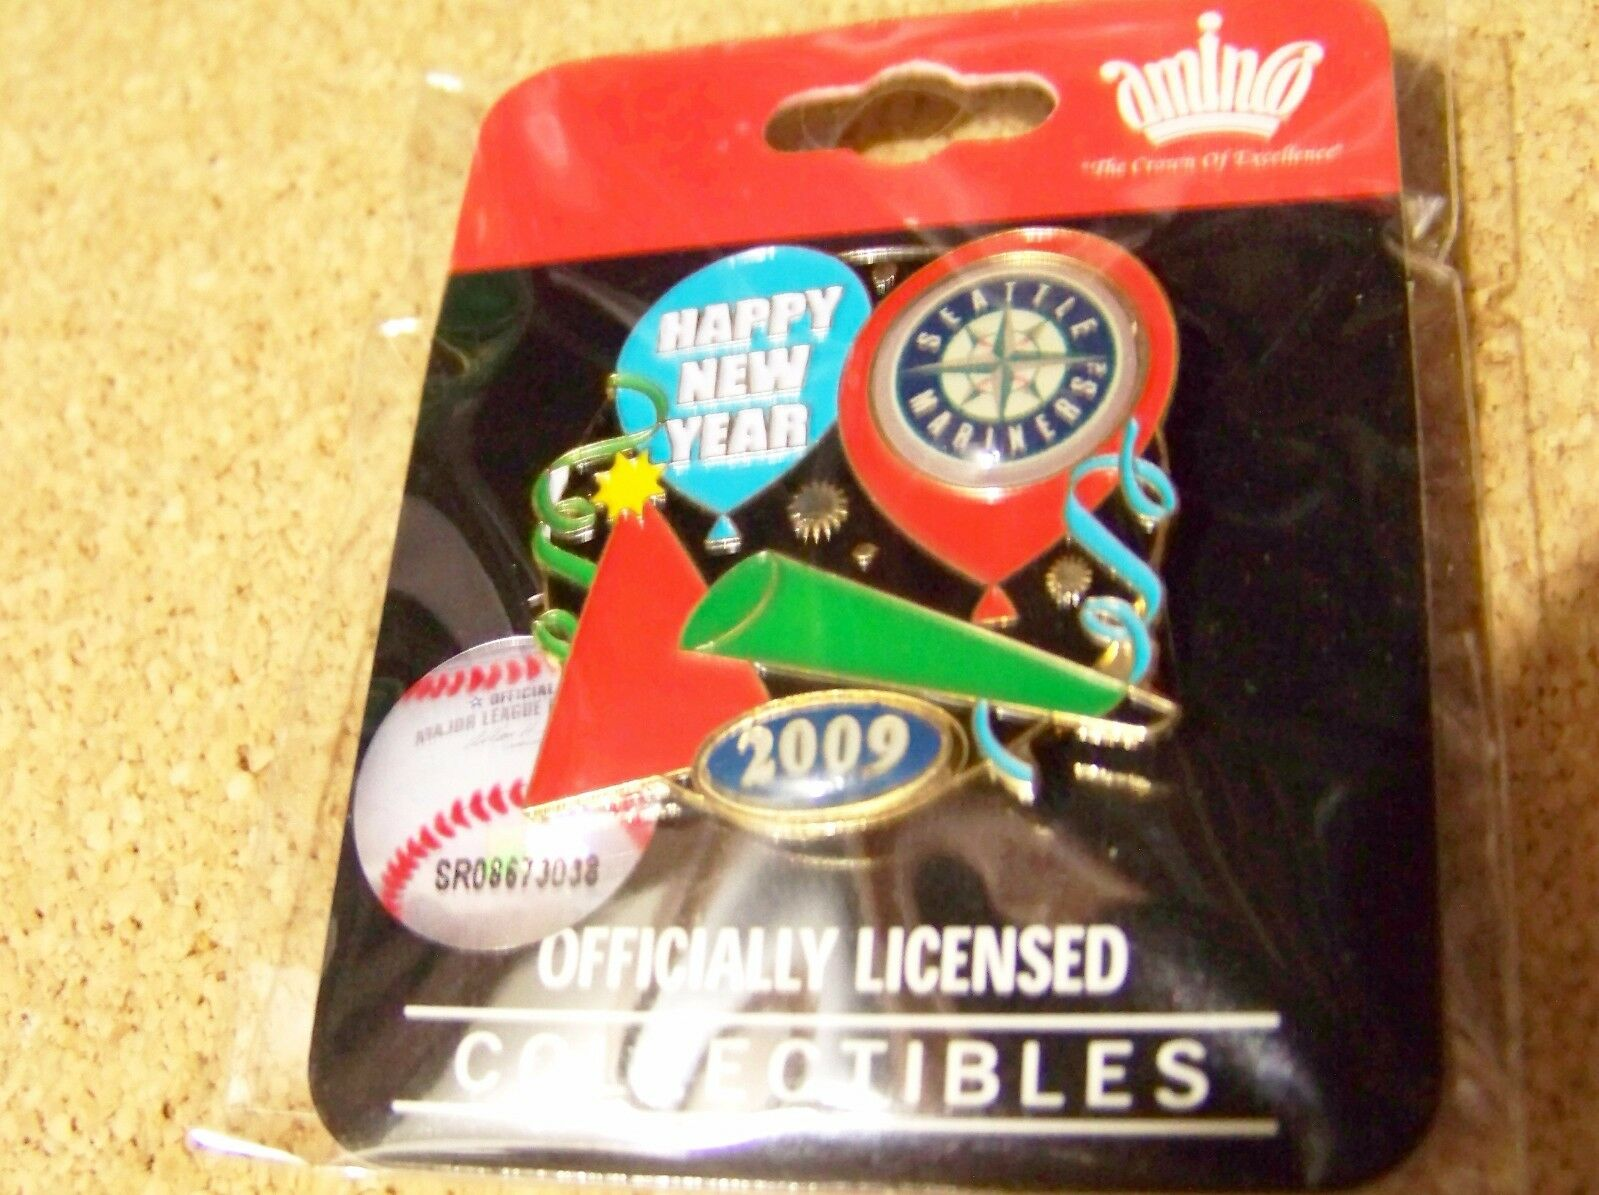 2009 Seattle Mariners Party New Years pin